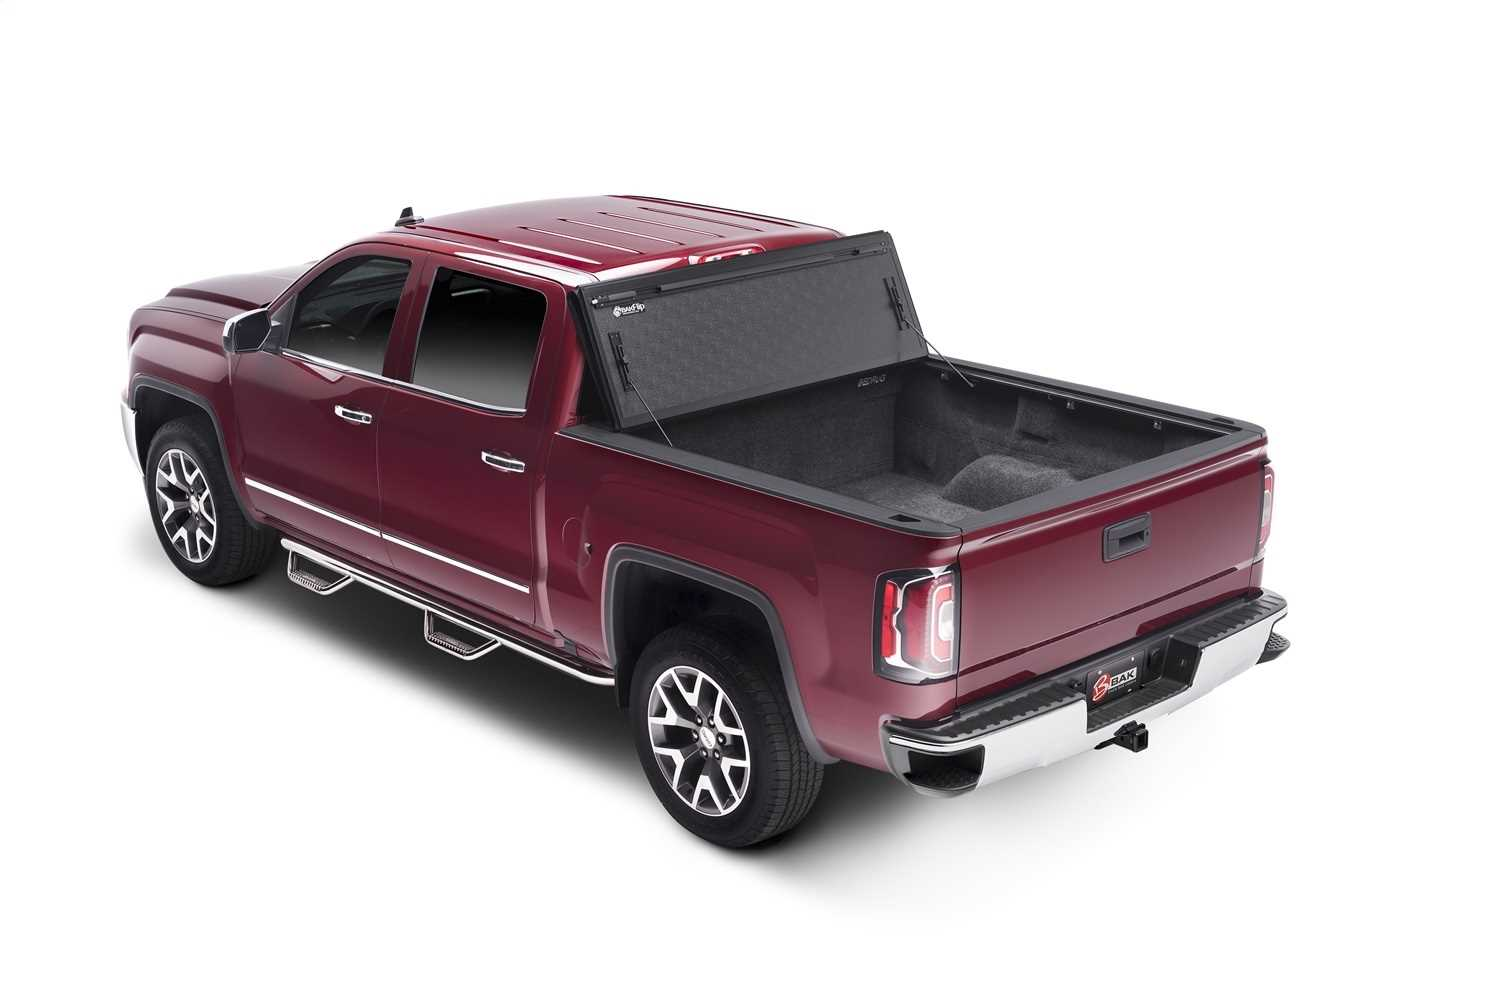 Bak Industries BAKFlip FiberMax Hard Folding Truck Bed Cover 1126525